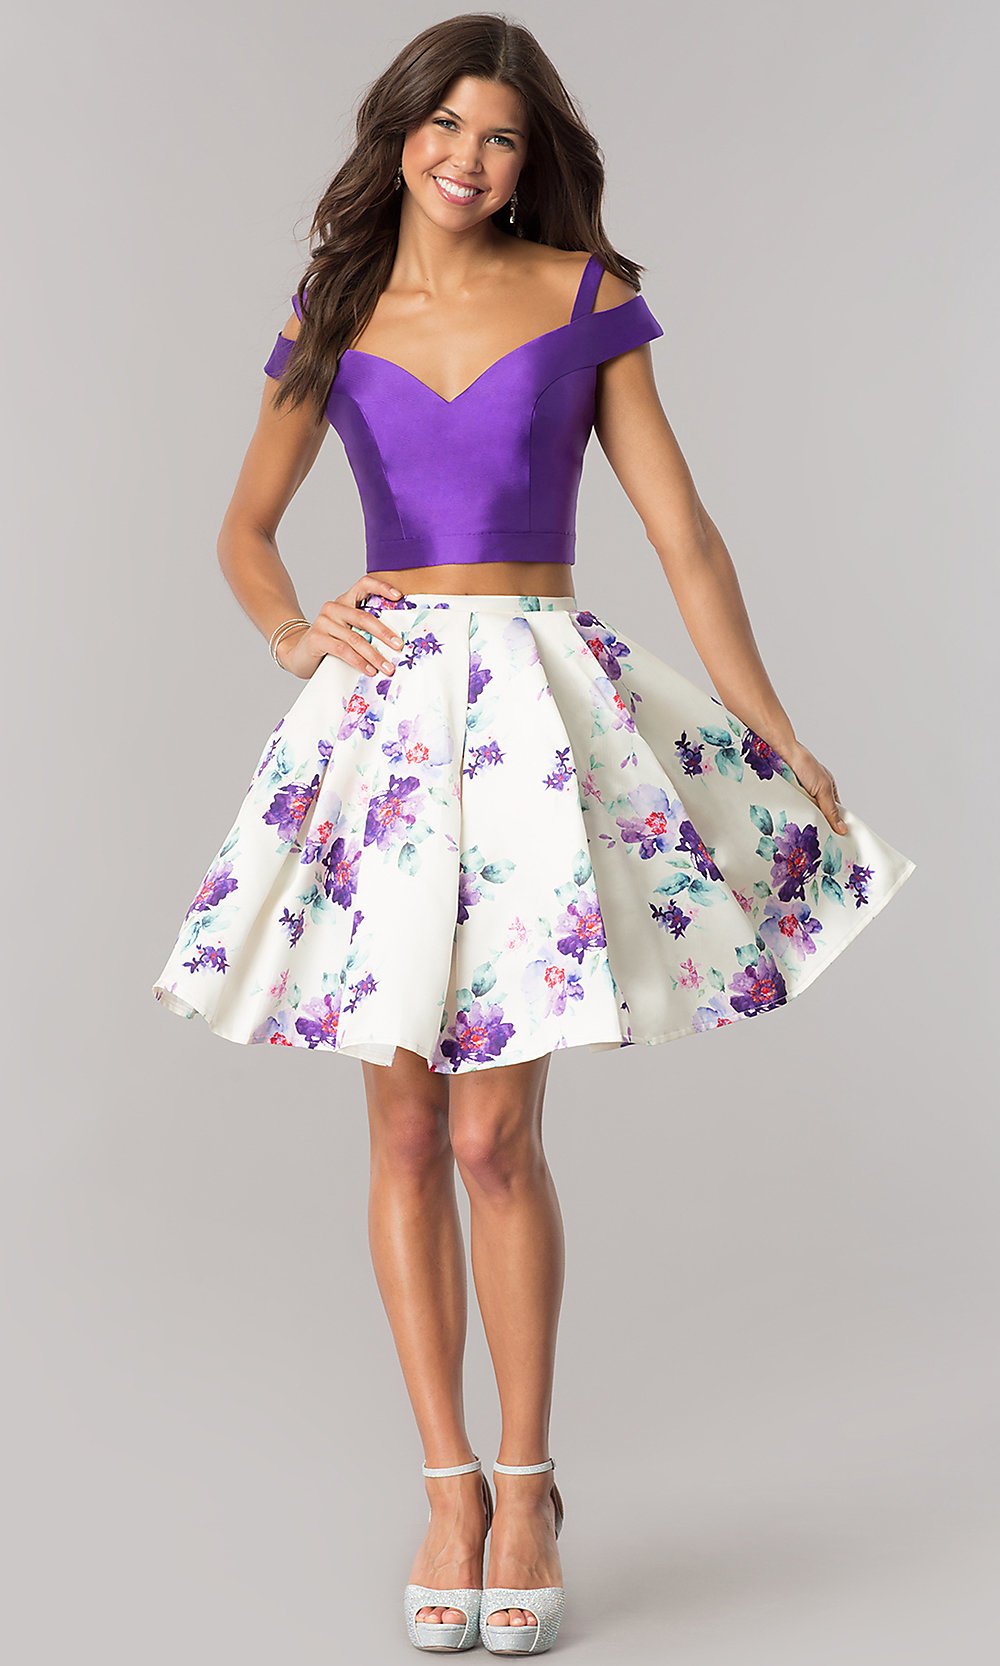 f5573e0d5fa Unique Print Prom and Semi-Formal Dresses - PromGirl